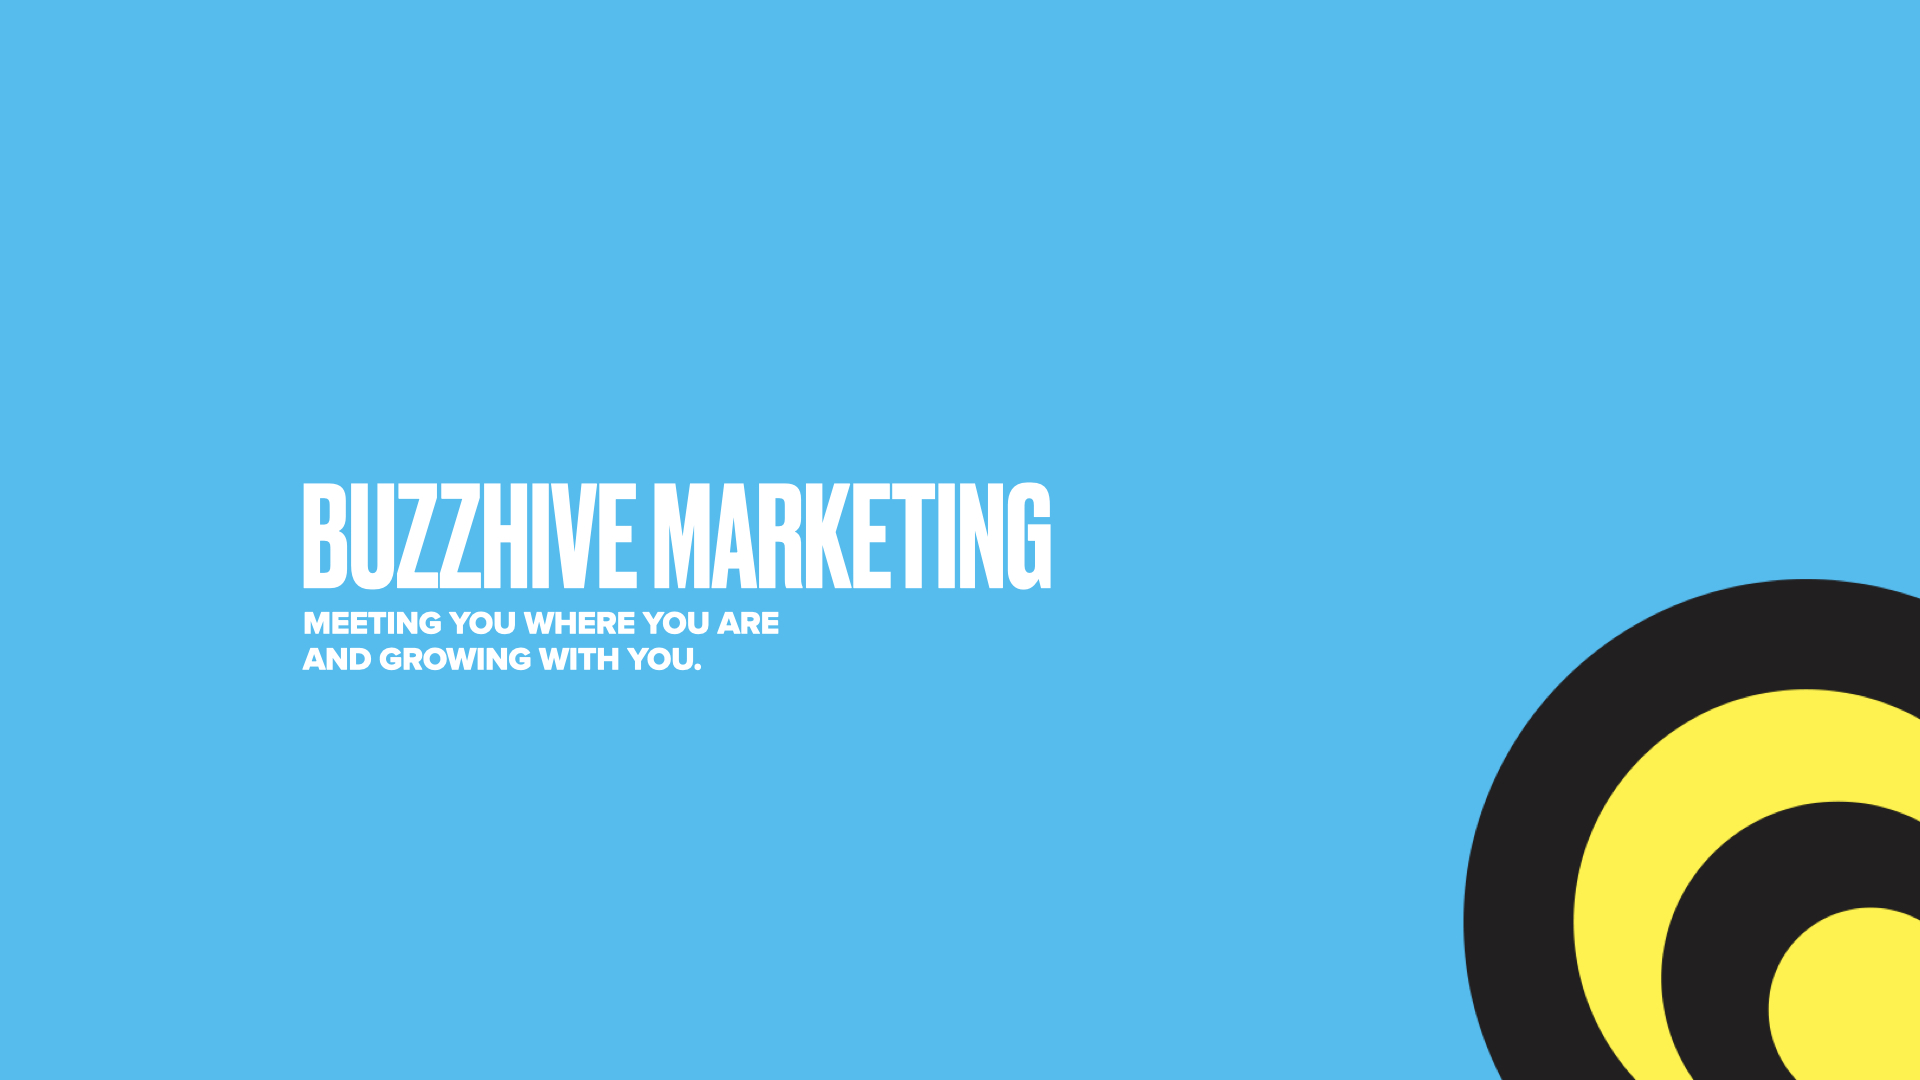 Buzzhive-Marketing-Approach.012 Garage Force Marketing